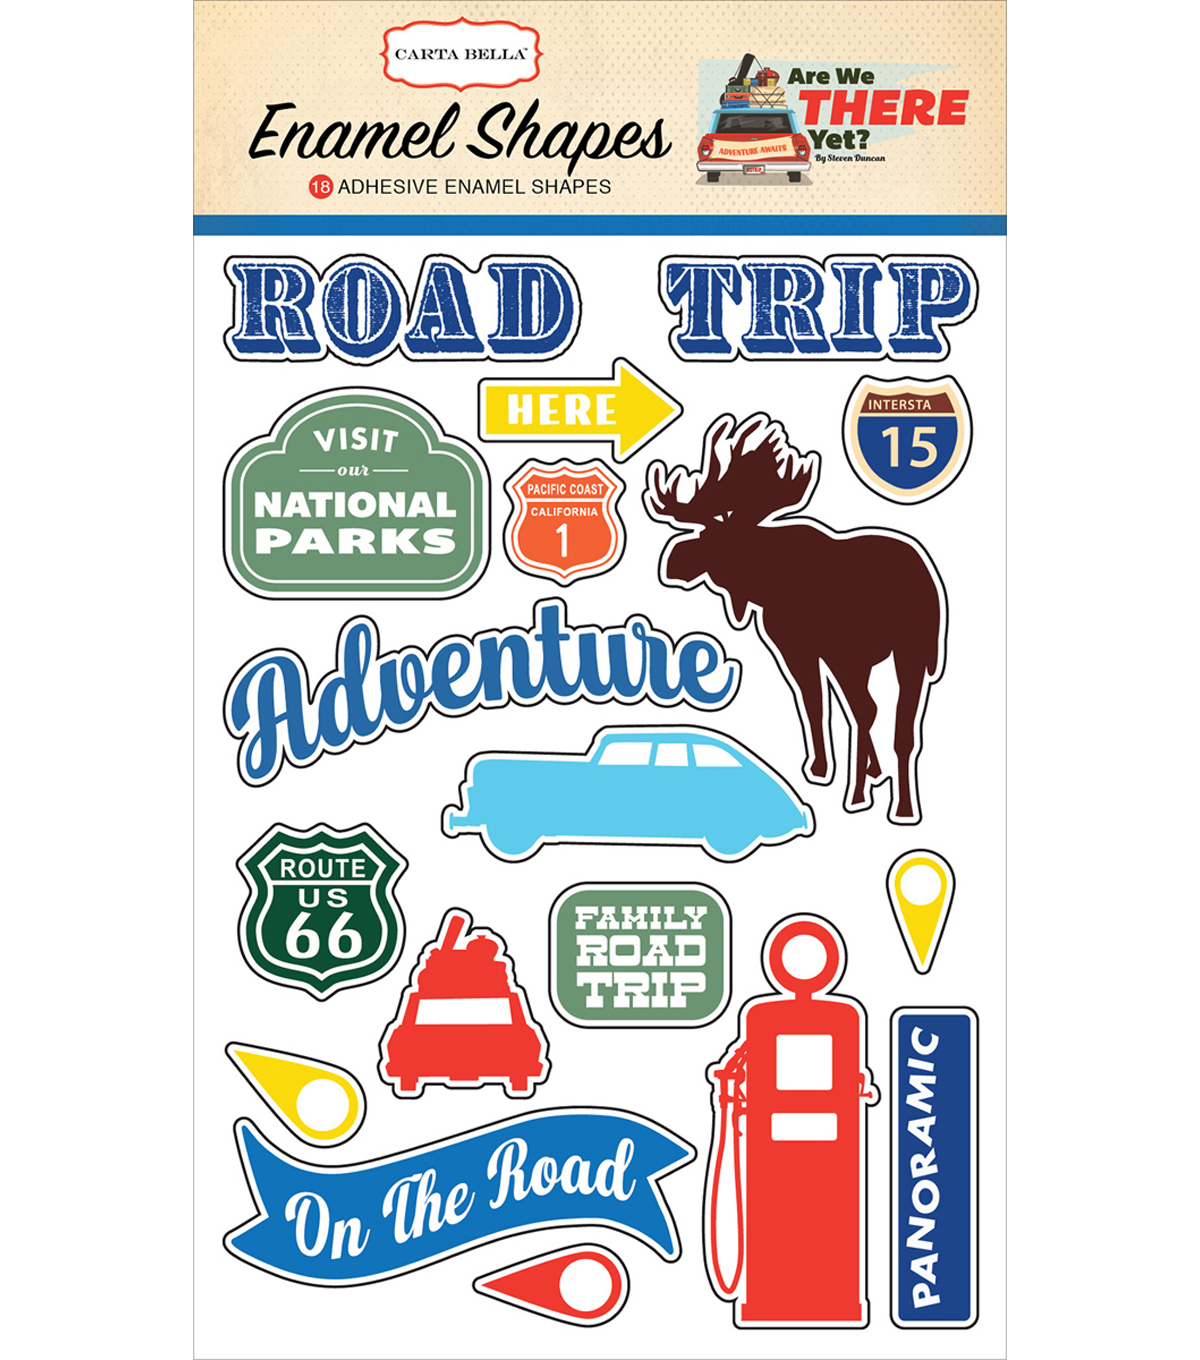 Are We There Yet? Adhesive Enamel Shapes